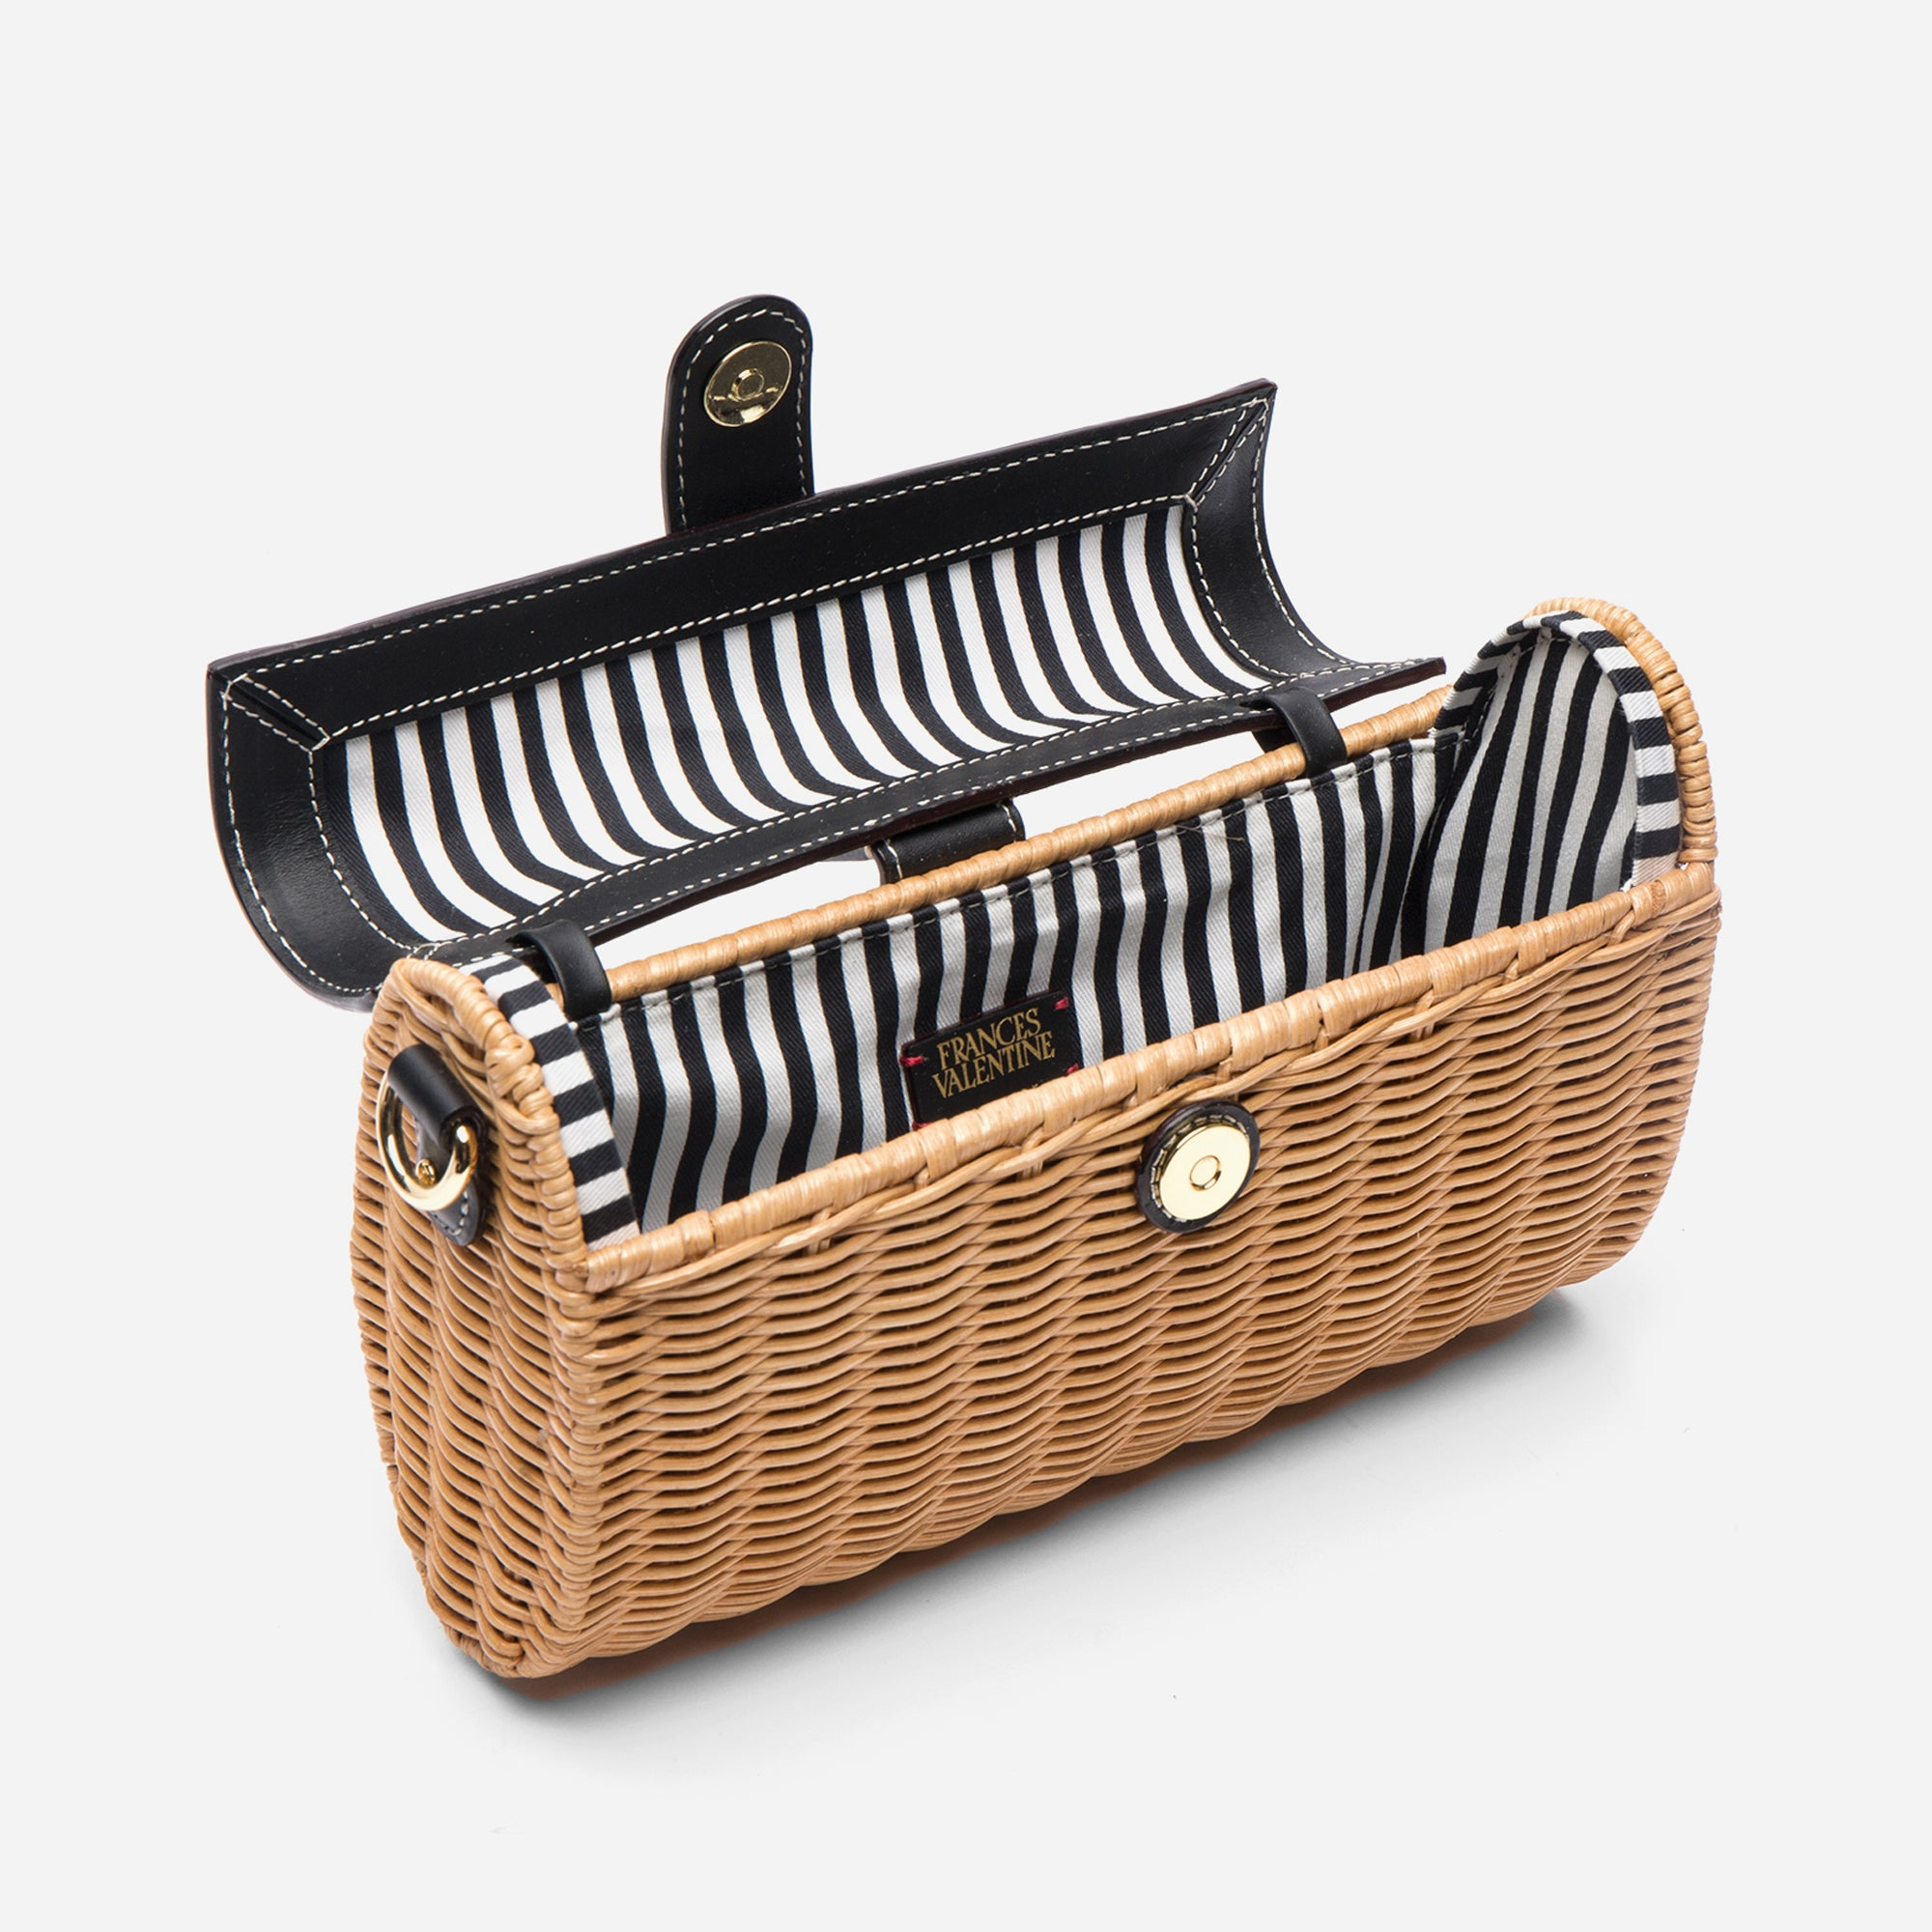 Betsy Wicker Basket Bag Natural Black